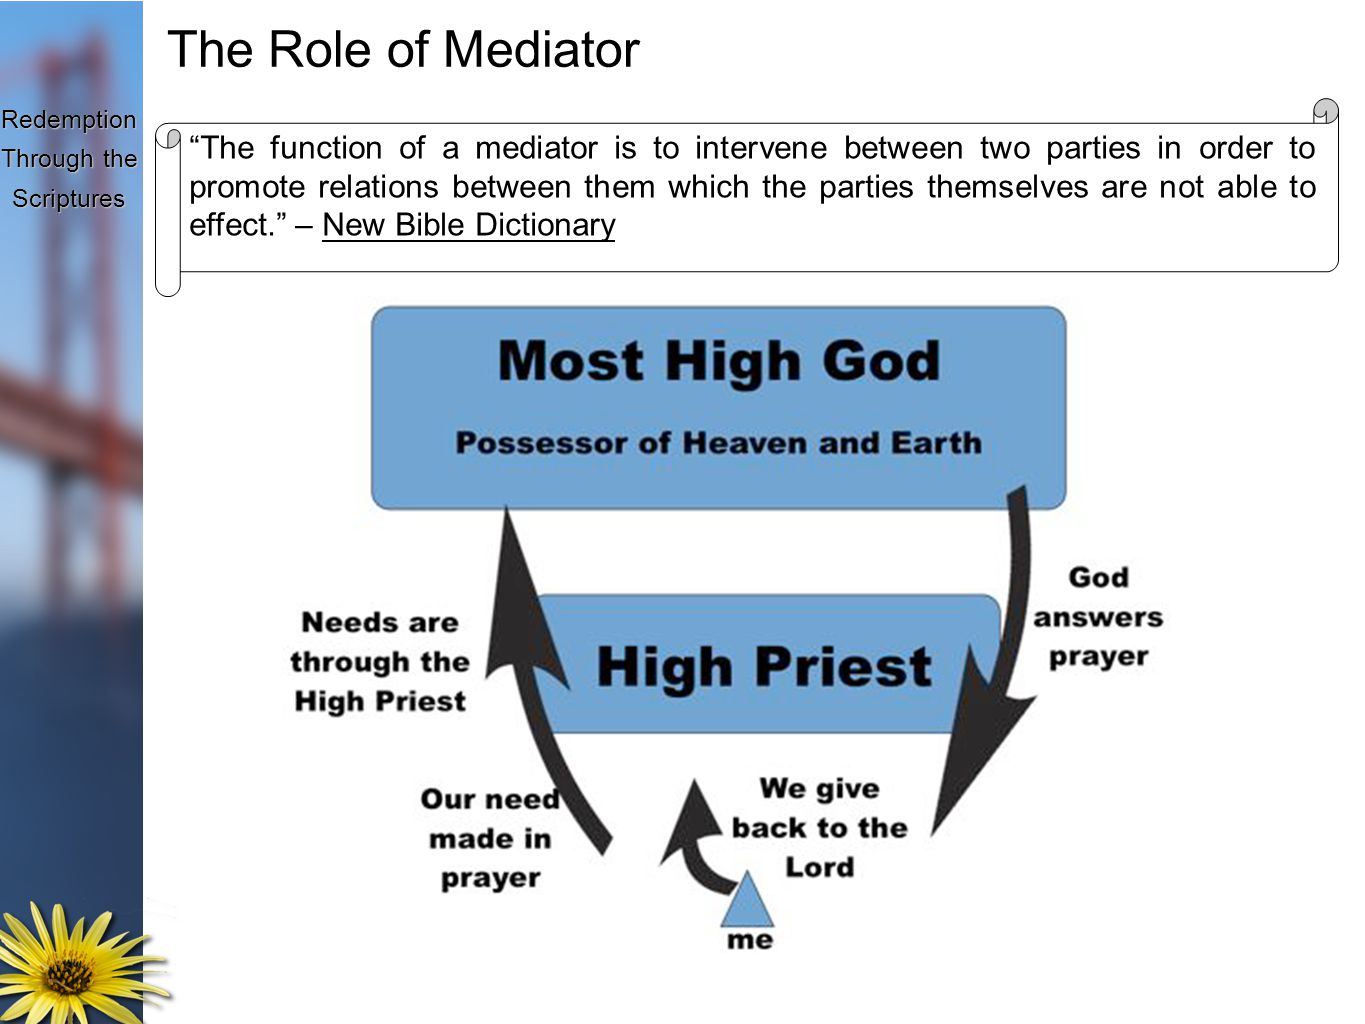 Redemption Through the Scriptures The Role of Mediator The function of a mediator is to intervene between two parties in order to promote relations between them which the parties themselves are not able to effect. – New Bible Dictionary